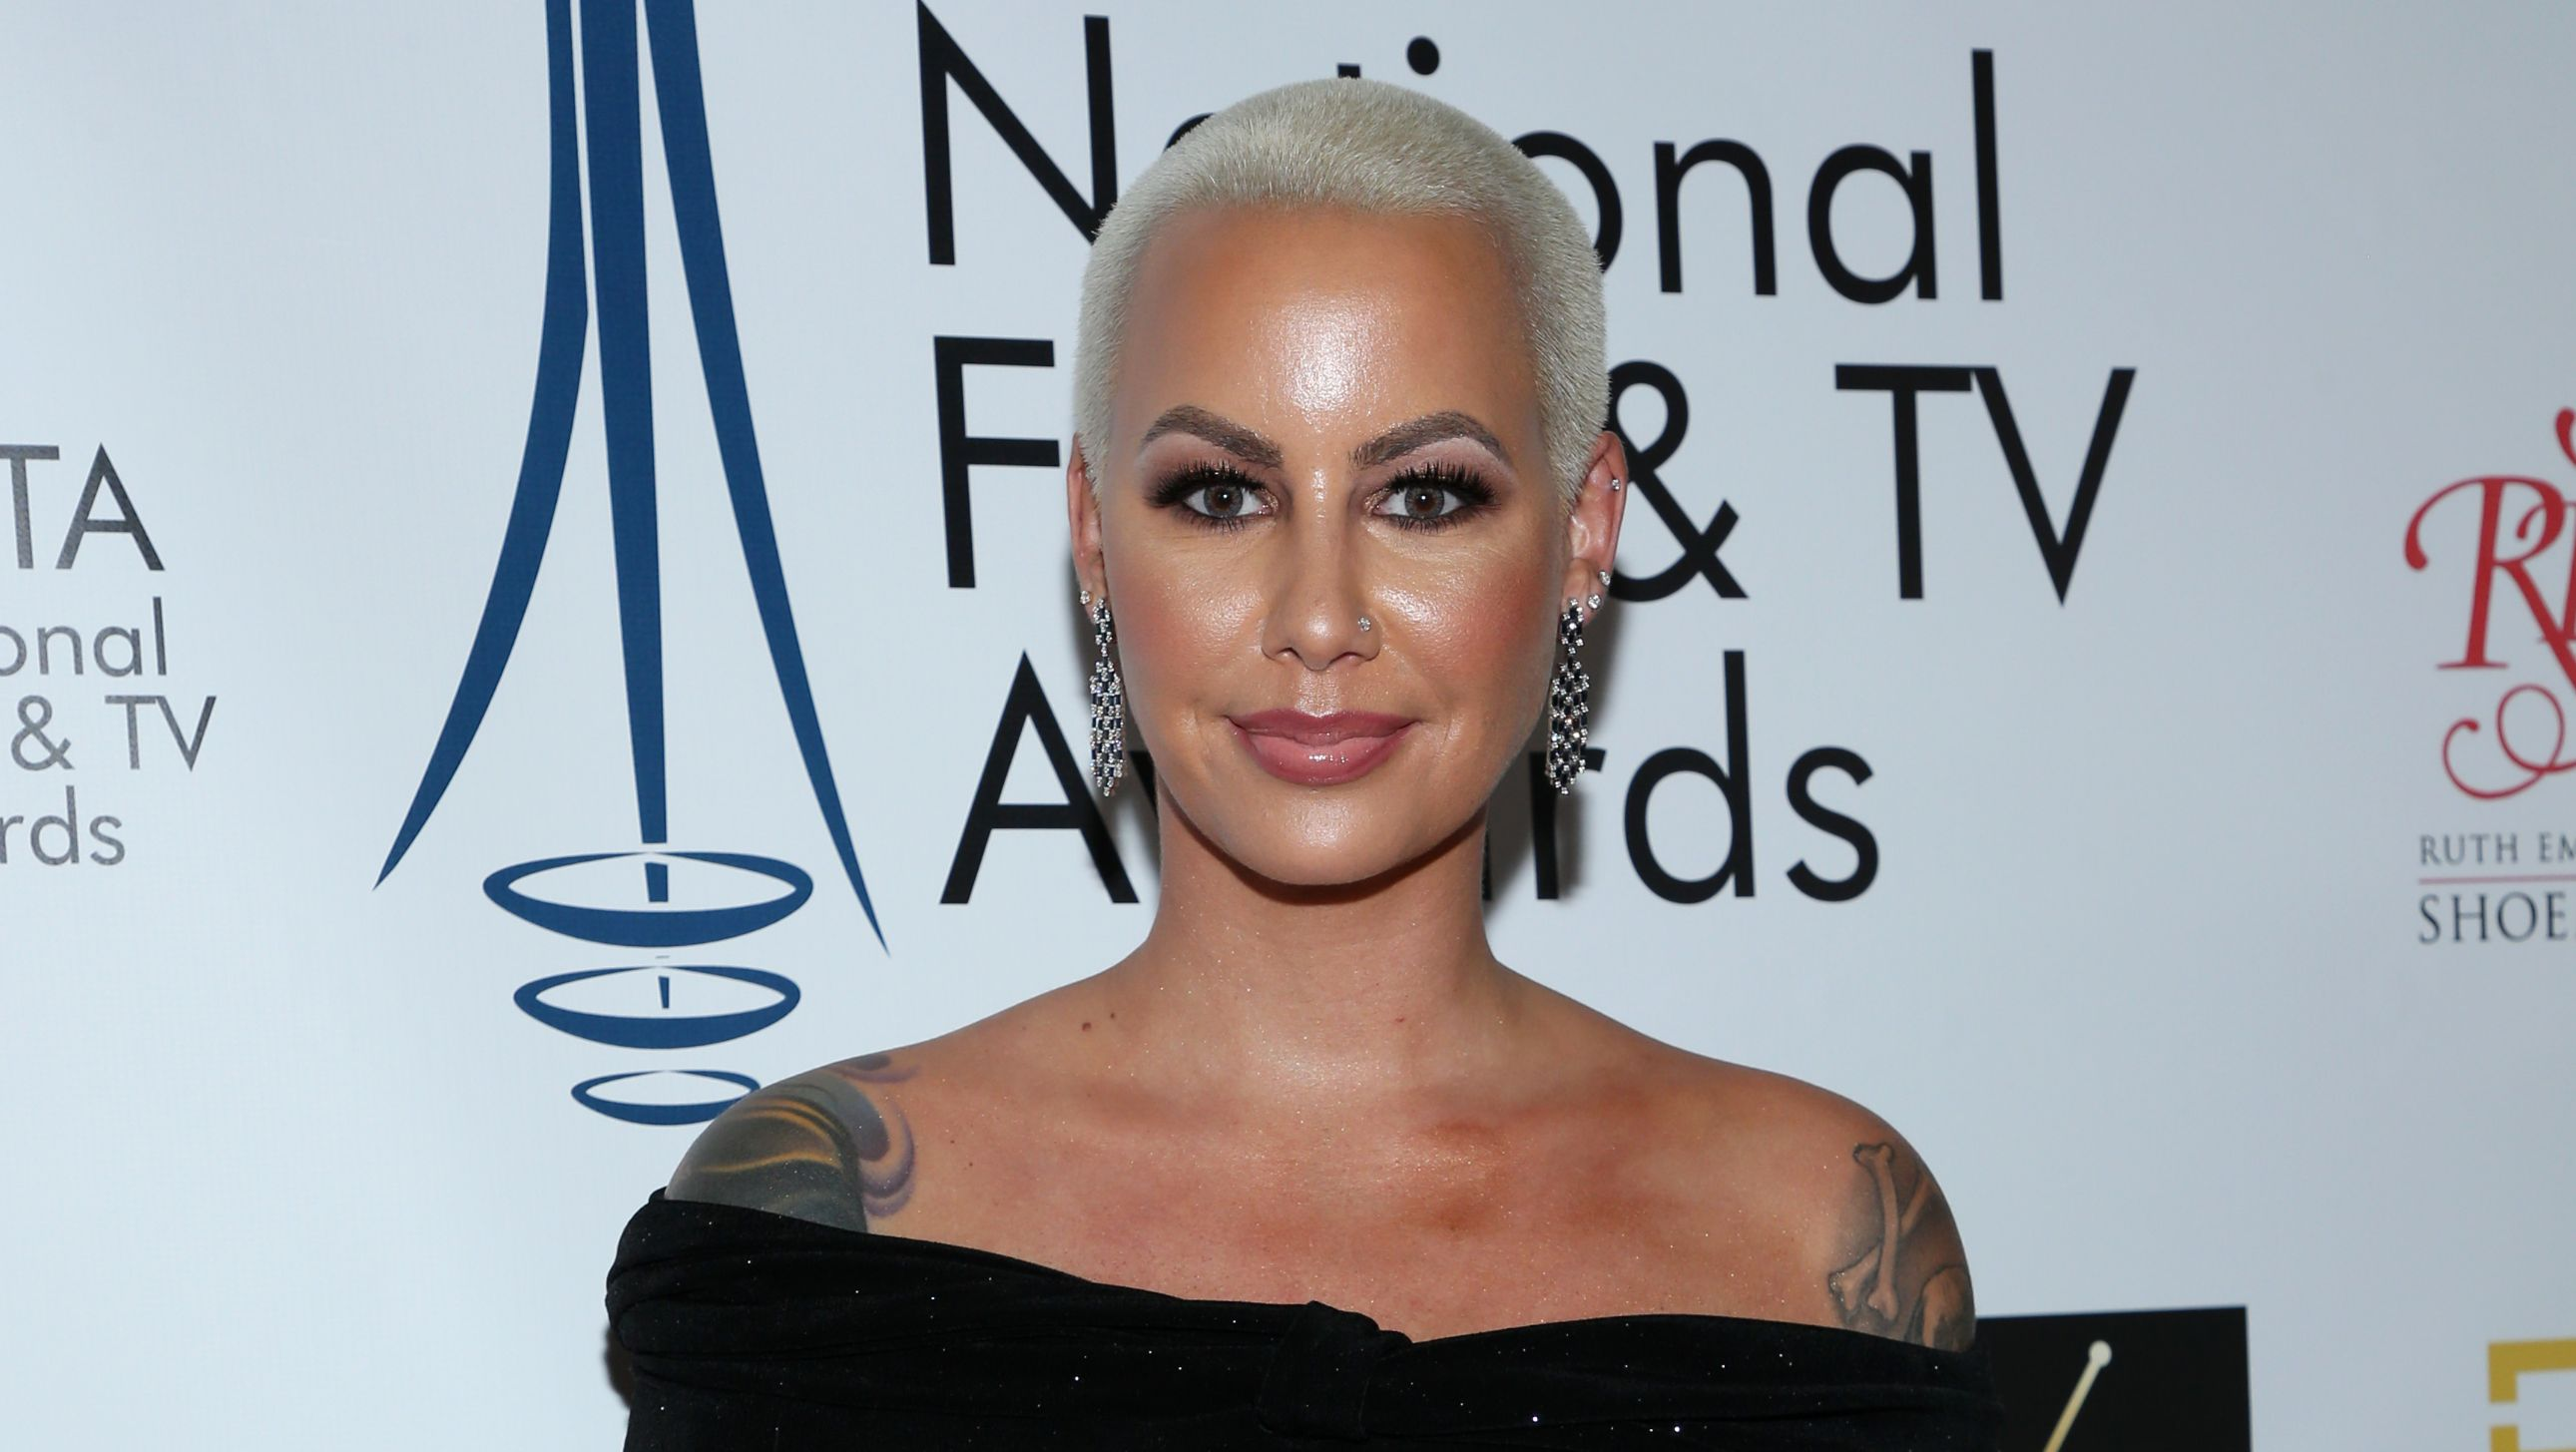 Amber Rose Shows Off Big Boy Baby Bump Ahead Of Giving Birth